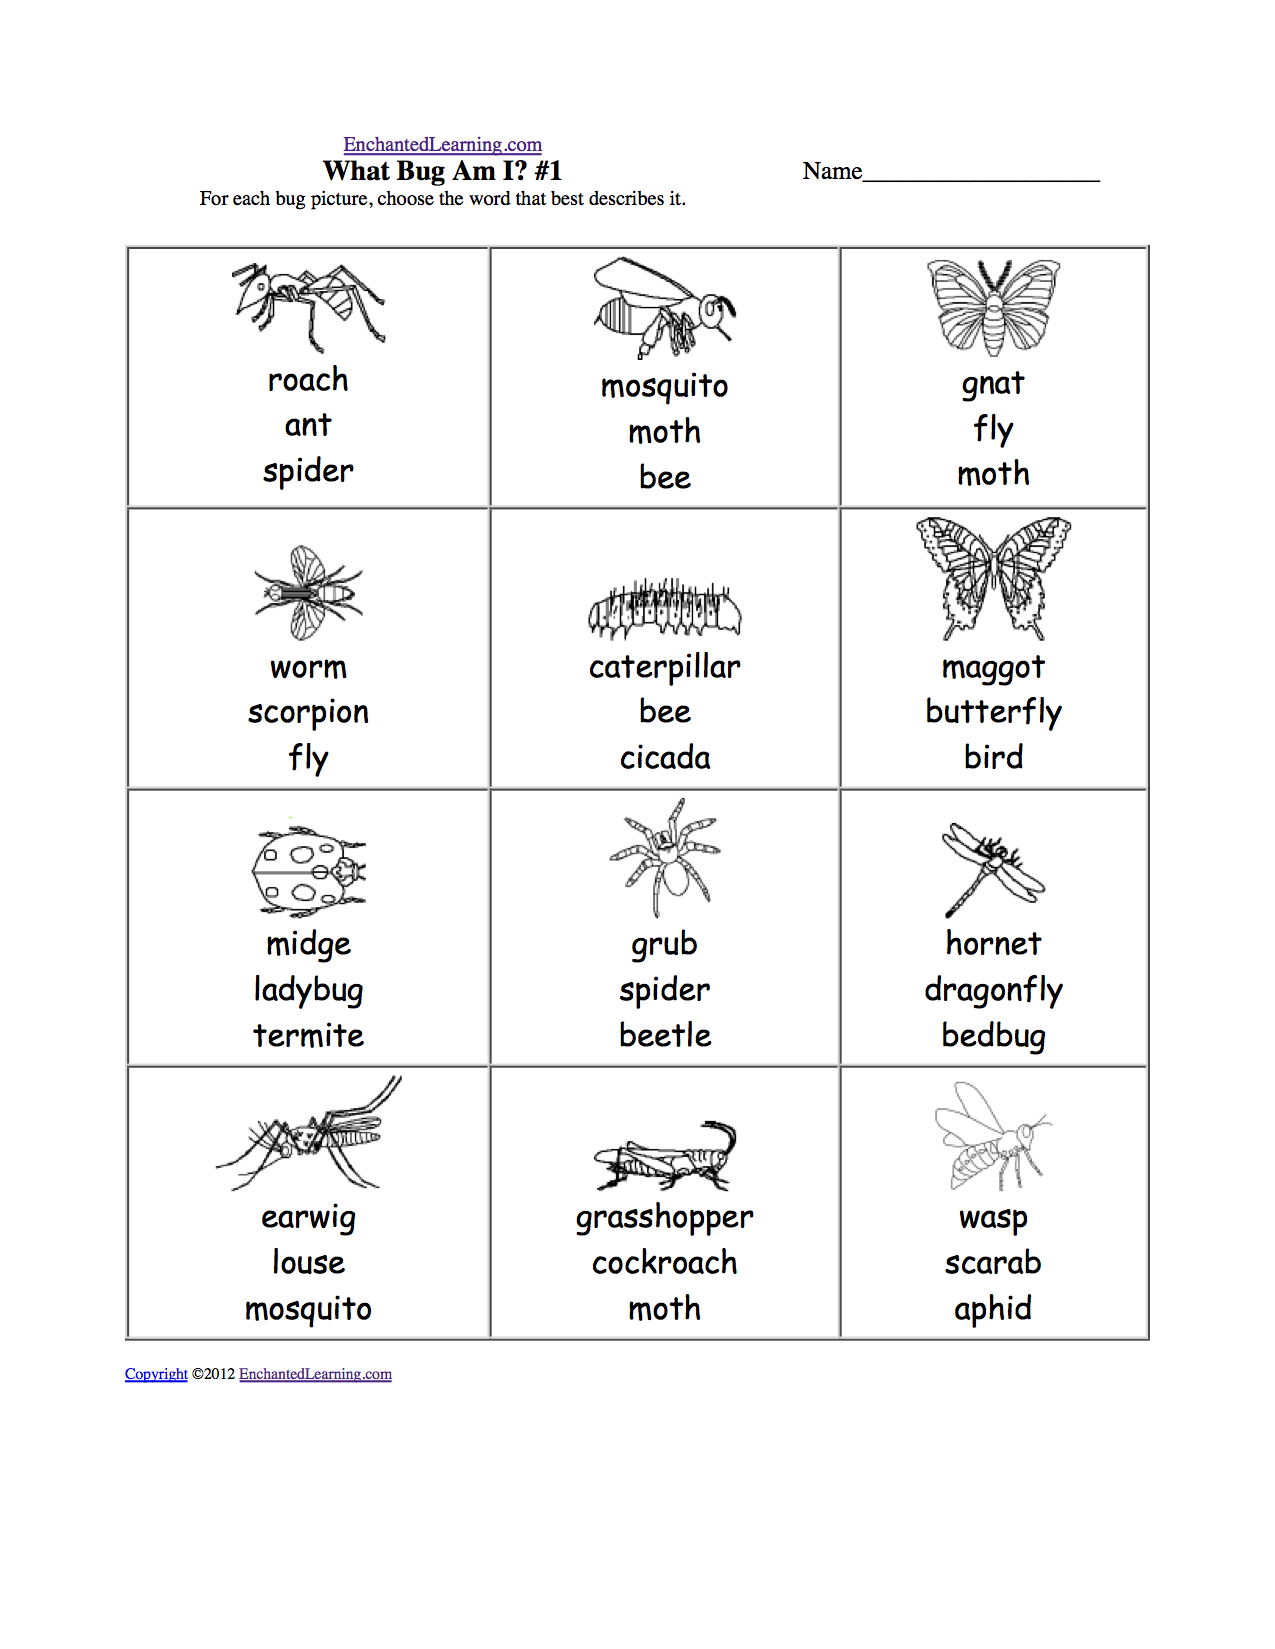 Aldiablosus  Winning What Am I Worksheet Printouts  Enchantedlearningcom With Glamorous To Be Worksheet Esl Besides English Grammar Worksheets Grade  Furthermore Identify Parts Of Speech Worksheets With Endearing Grade  Temperature Worksheets Also Magnetic Worksheets In Addition Identify Literary Devices Worksheet And Money Questions Worksheet As Well As Free Primary Worksheets Additionally Worksheets For Second Grade Math From Enchantedlearningcom With Aldiablosus  Glamorous What Am I Worksheet Printouts  Enchantedlearningcom With Endearing To Be Worksheet Esl Besides English Grammar Worksheets Grade  Furthermore Identify Parts Of Speech Worksheets And Winning Grade  Temperature Worksheets Also Magnetic Worksheets In Addition Identify Literary Devices Worksheet From Enchantedlearningcom